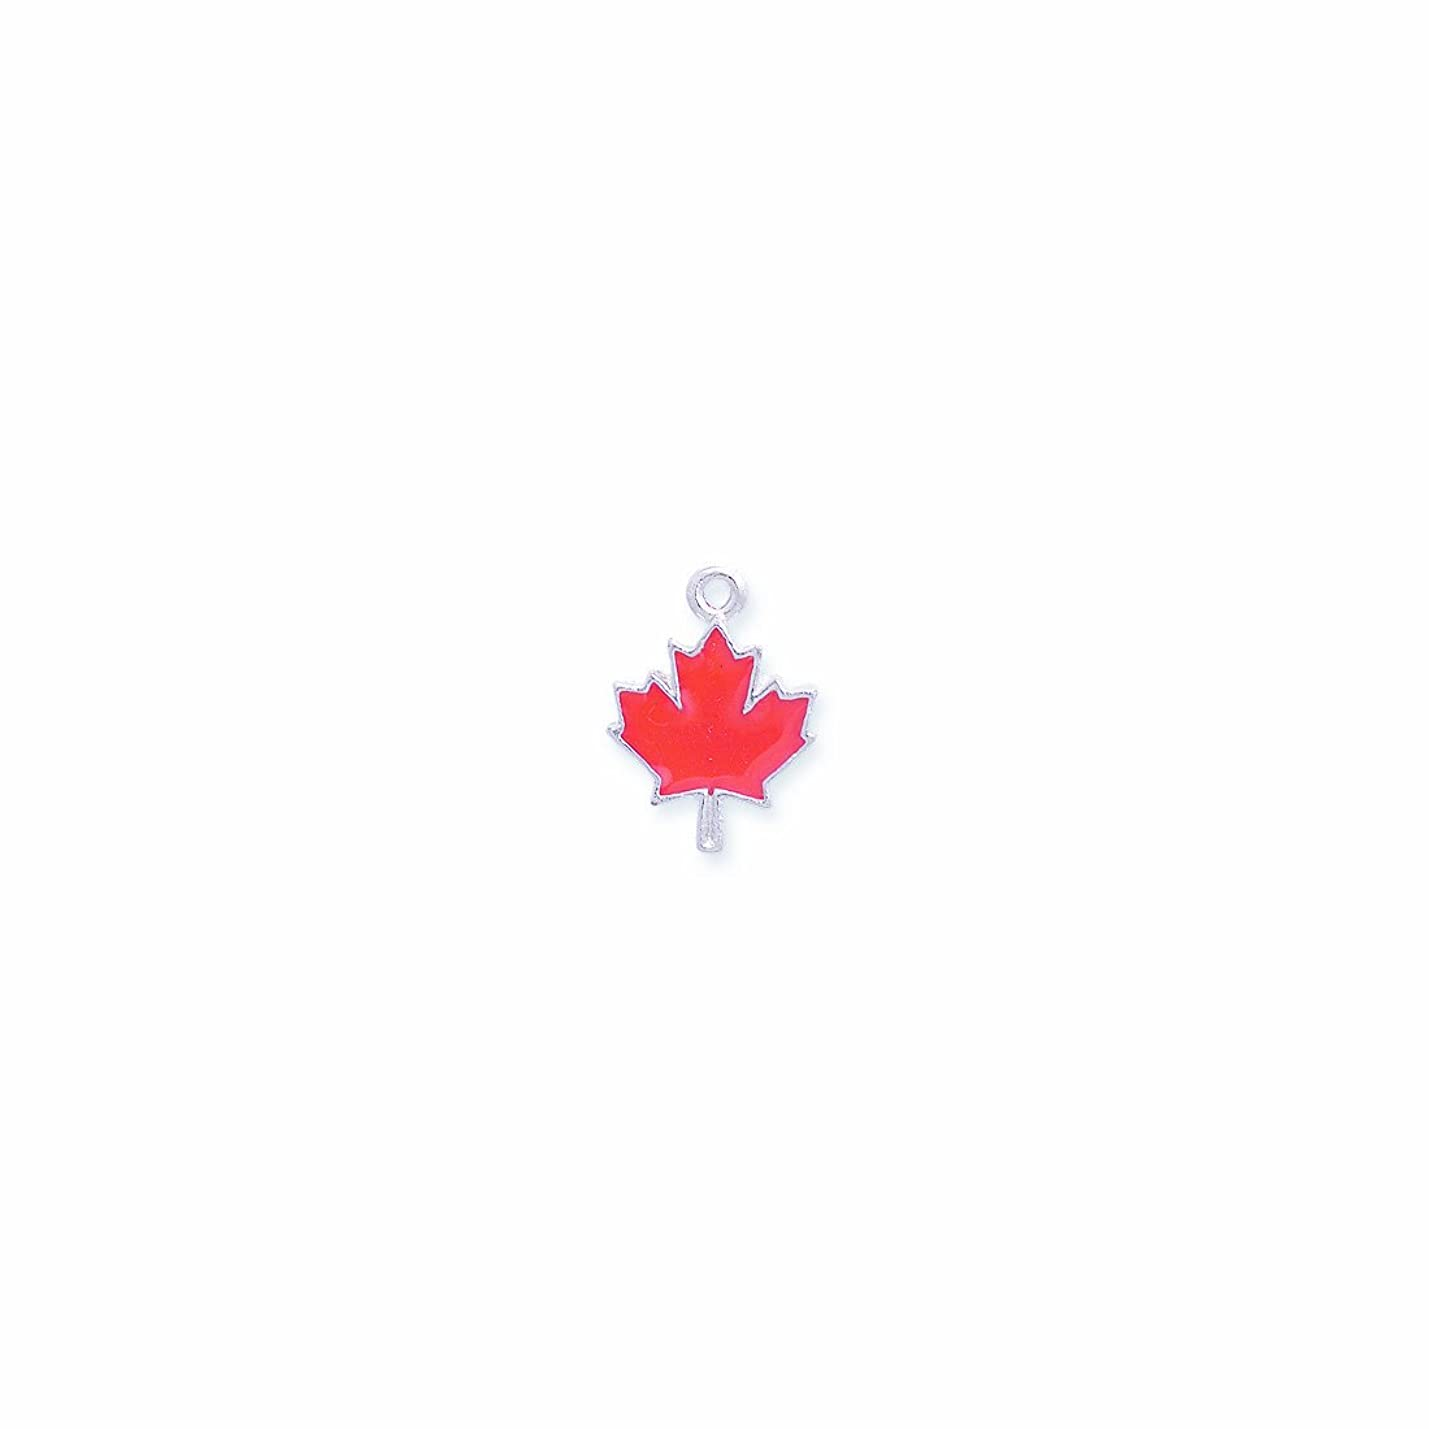 Shipwreck Beads Pewter Epoxy Maple Leaf Pendant, Red/Silver, 14 by 19mm, 2-Piece hjpufmlvfxcwd642